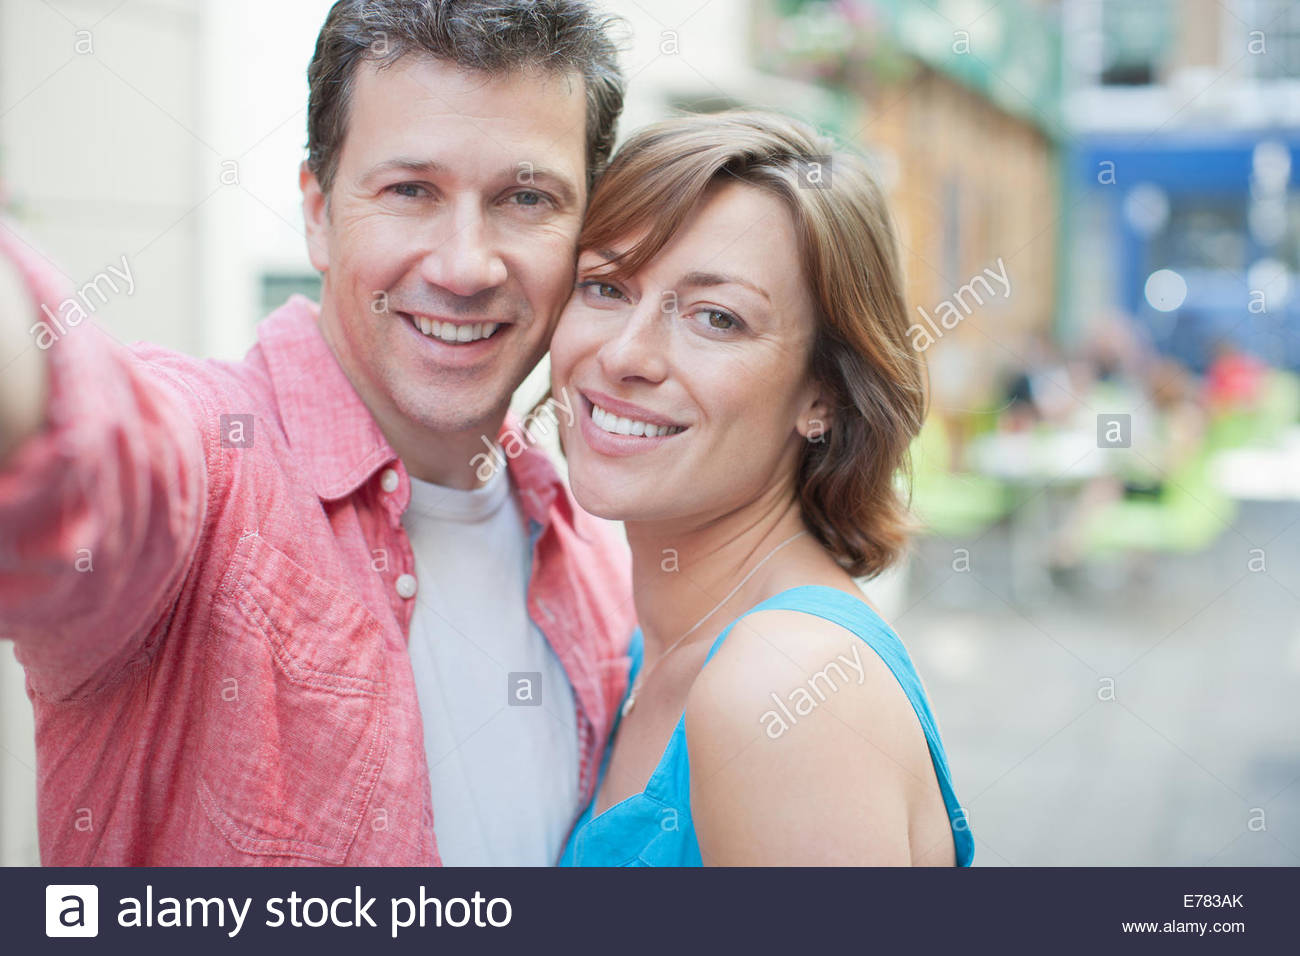 Playful couple smiling outdoors - Stock Image